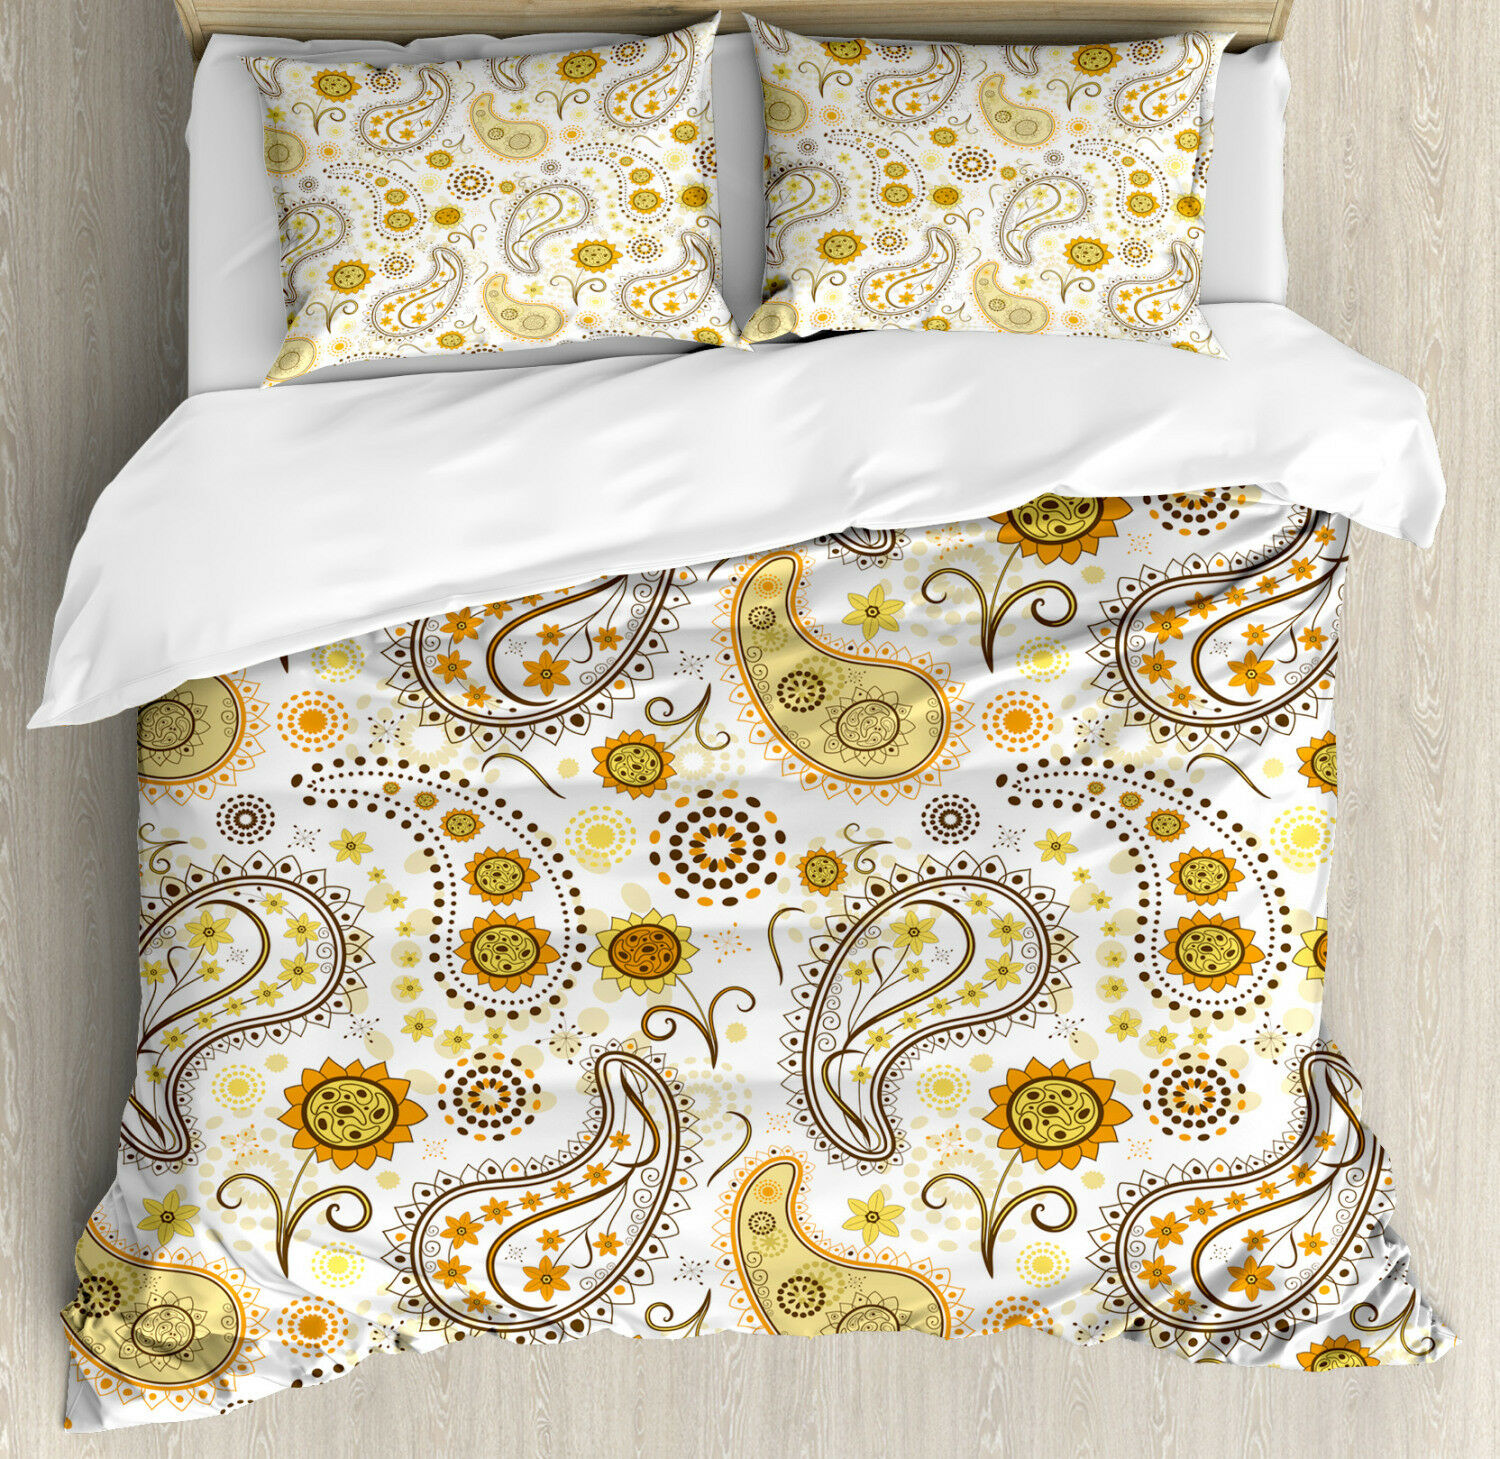 Paisley Duvet Cover Set with Pillow Shams Ethnic Tribal Floral Print